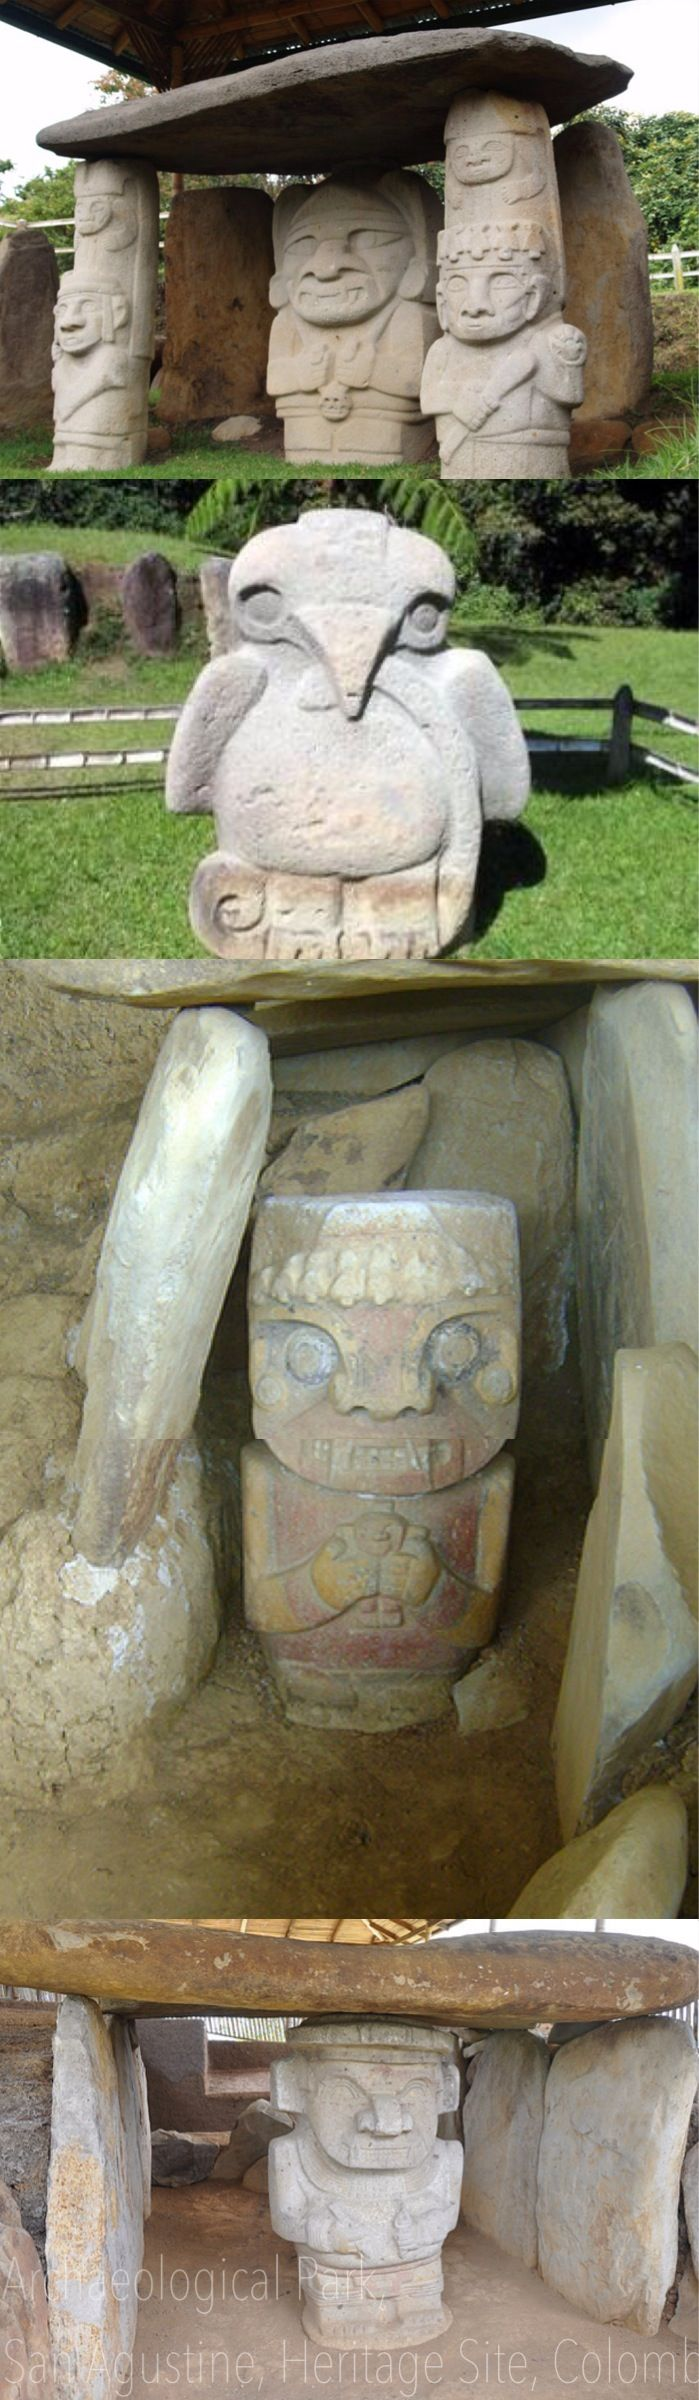 UNESCO Unesco World Heritage Site - Colombian carvings - San Agustine Archaeological Park